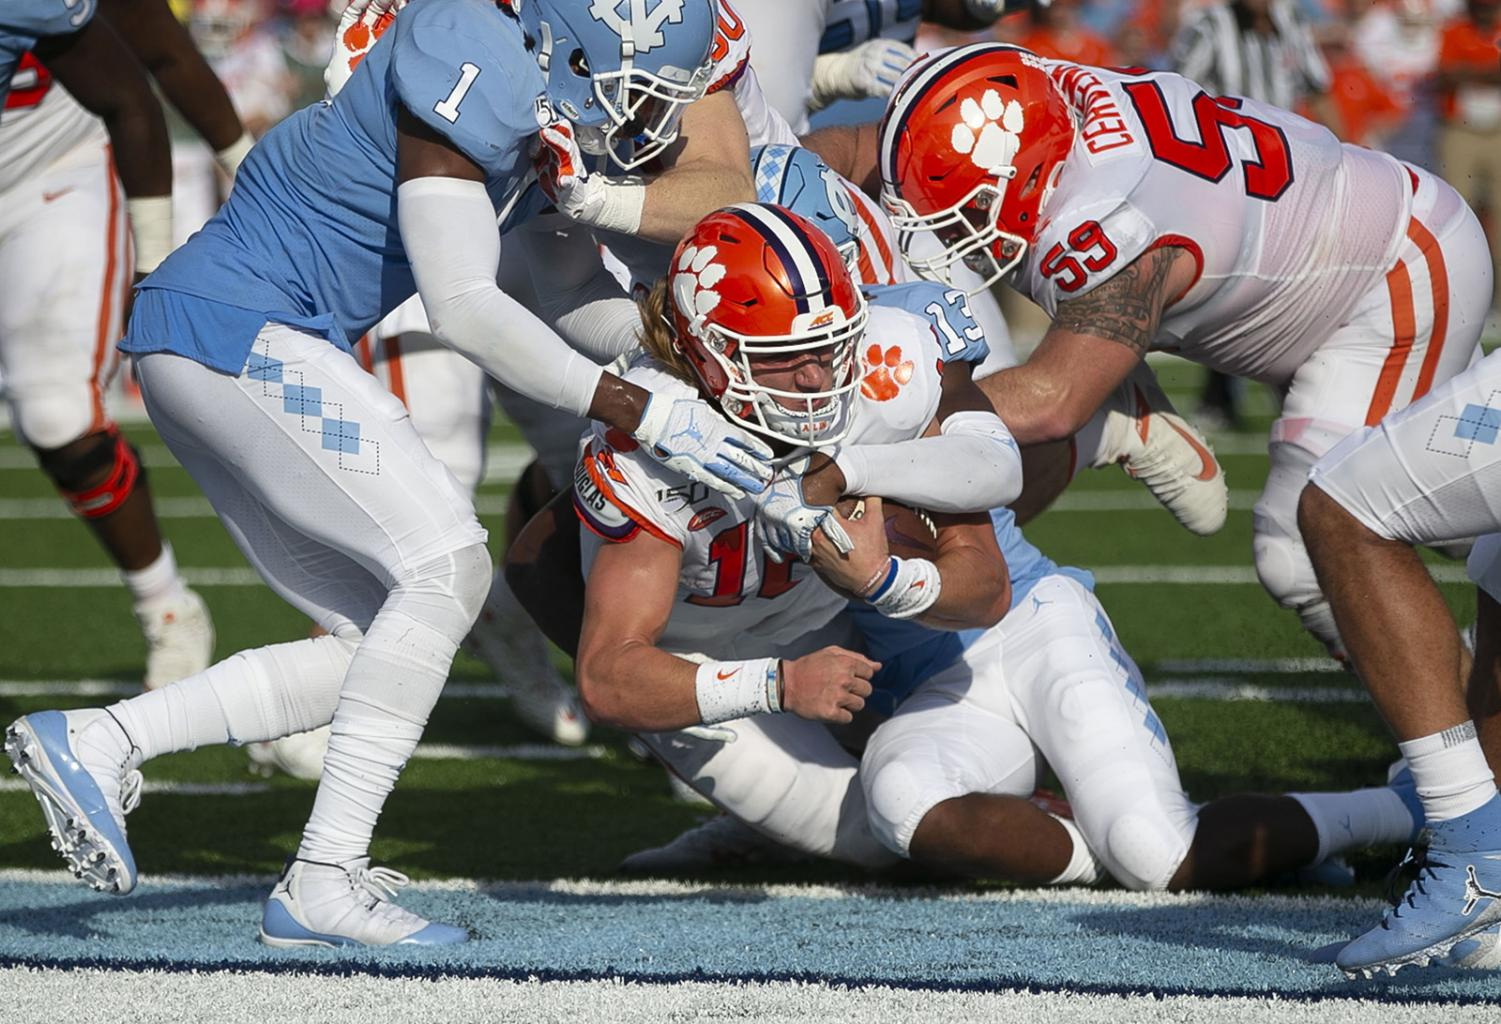 Clemson quarterback Trevor Lawrence (16) scores a touchdown on a three-yard run to tie North Carolina 14-14 in the second quarter on Saturday, September 28, 2019 at Kenan Stadium in Chapel Hill, N.C.